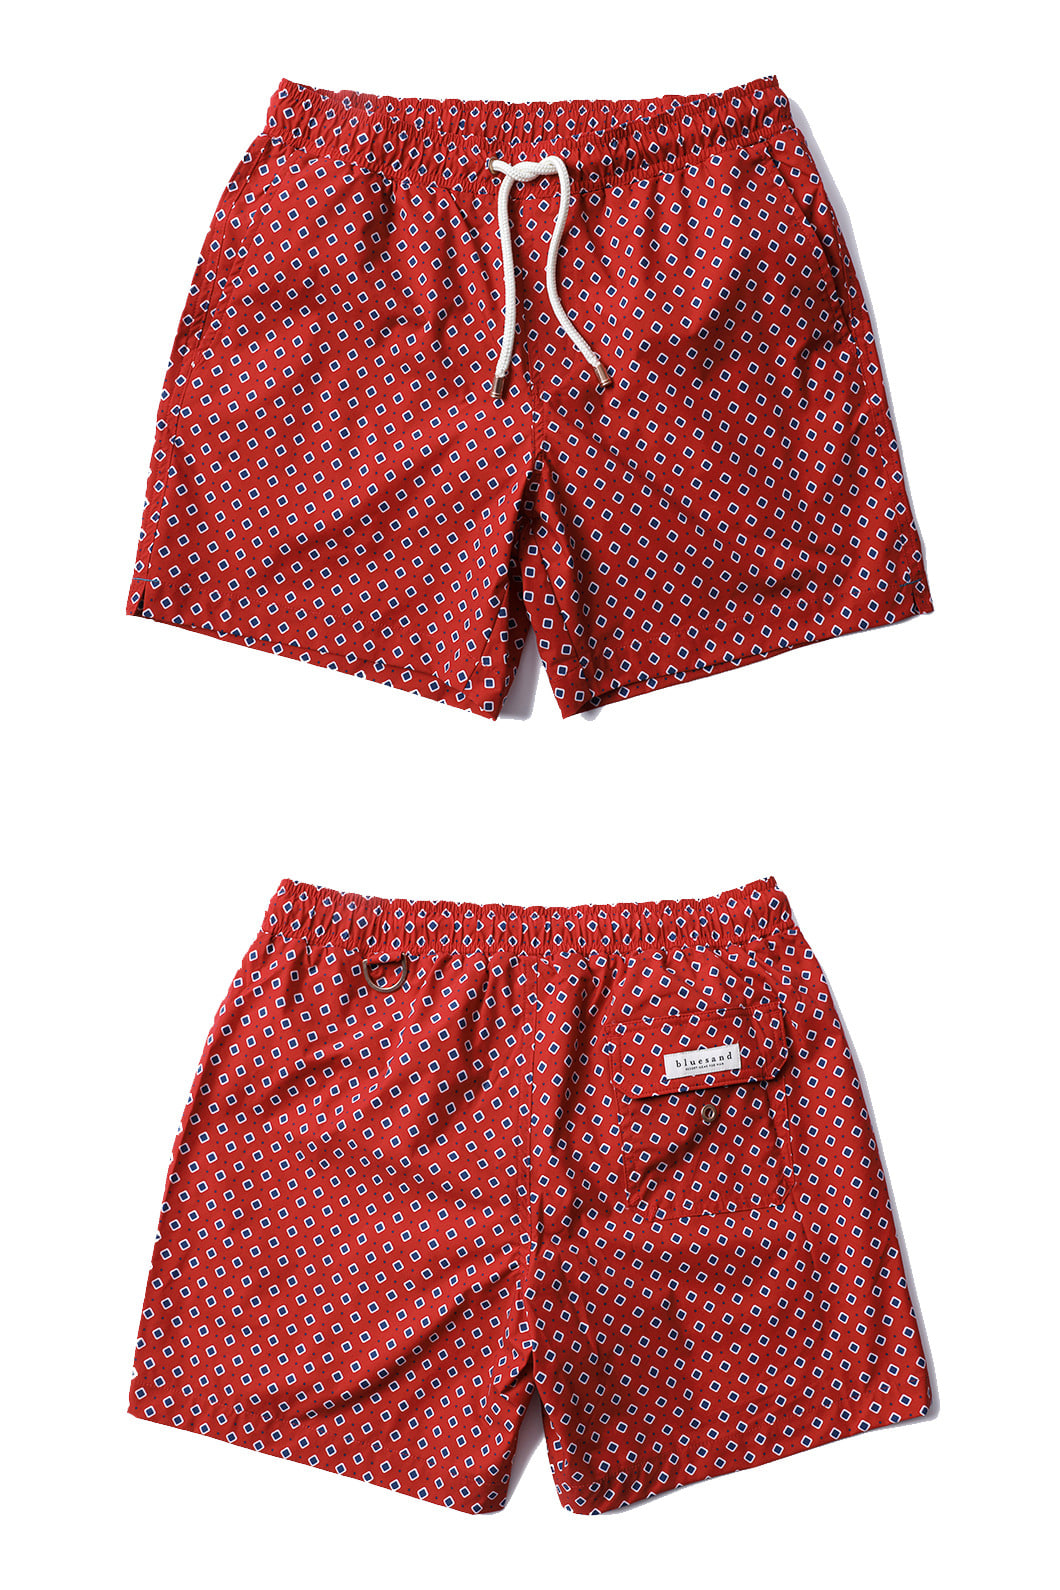 BLUE SQUARE DOT SWIM SHORTS-REDFATHER & SON SET! 세트 할인!